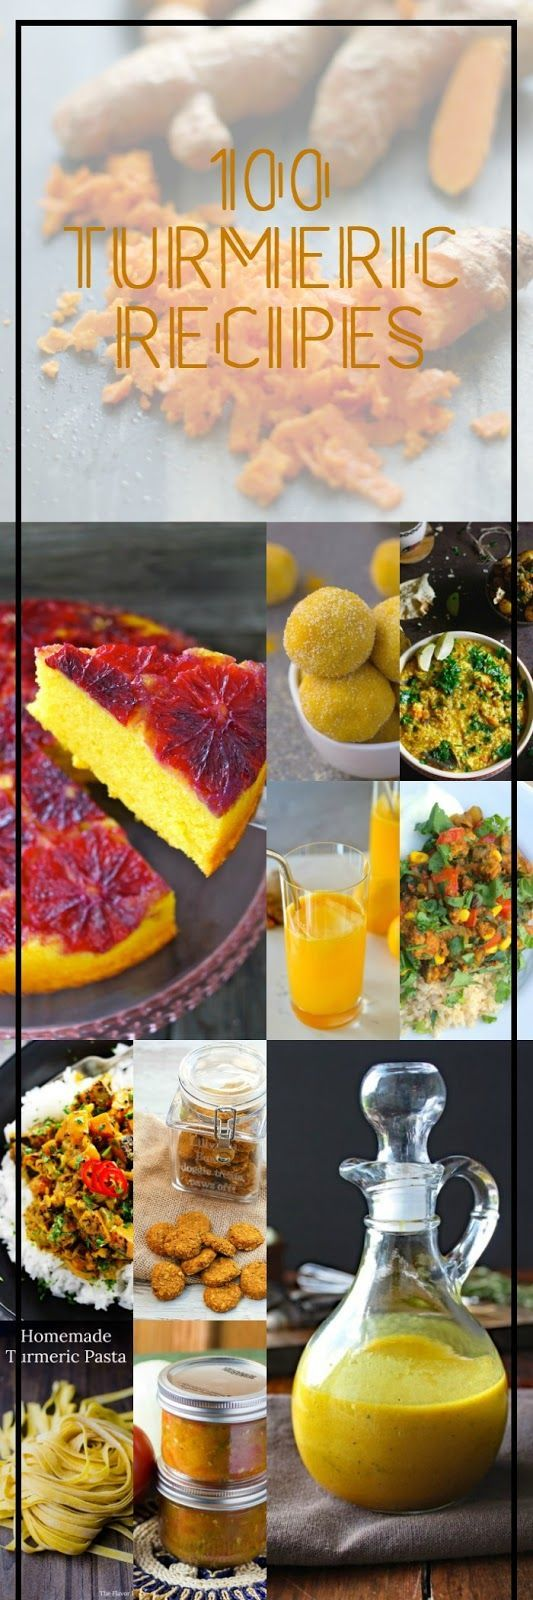 100 Turmeric Recipes